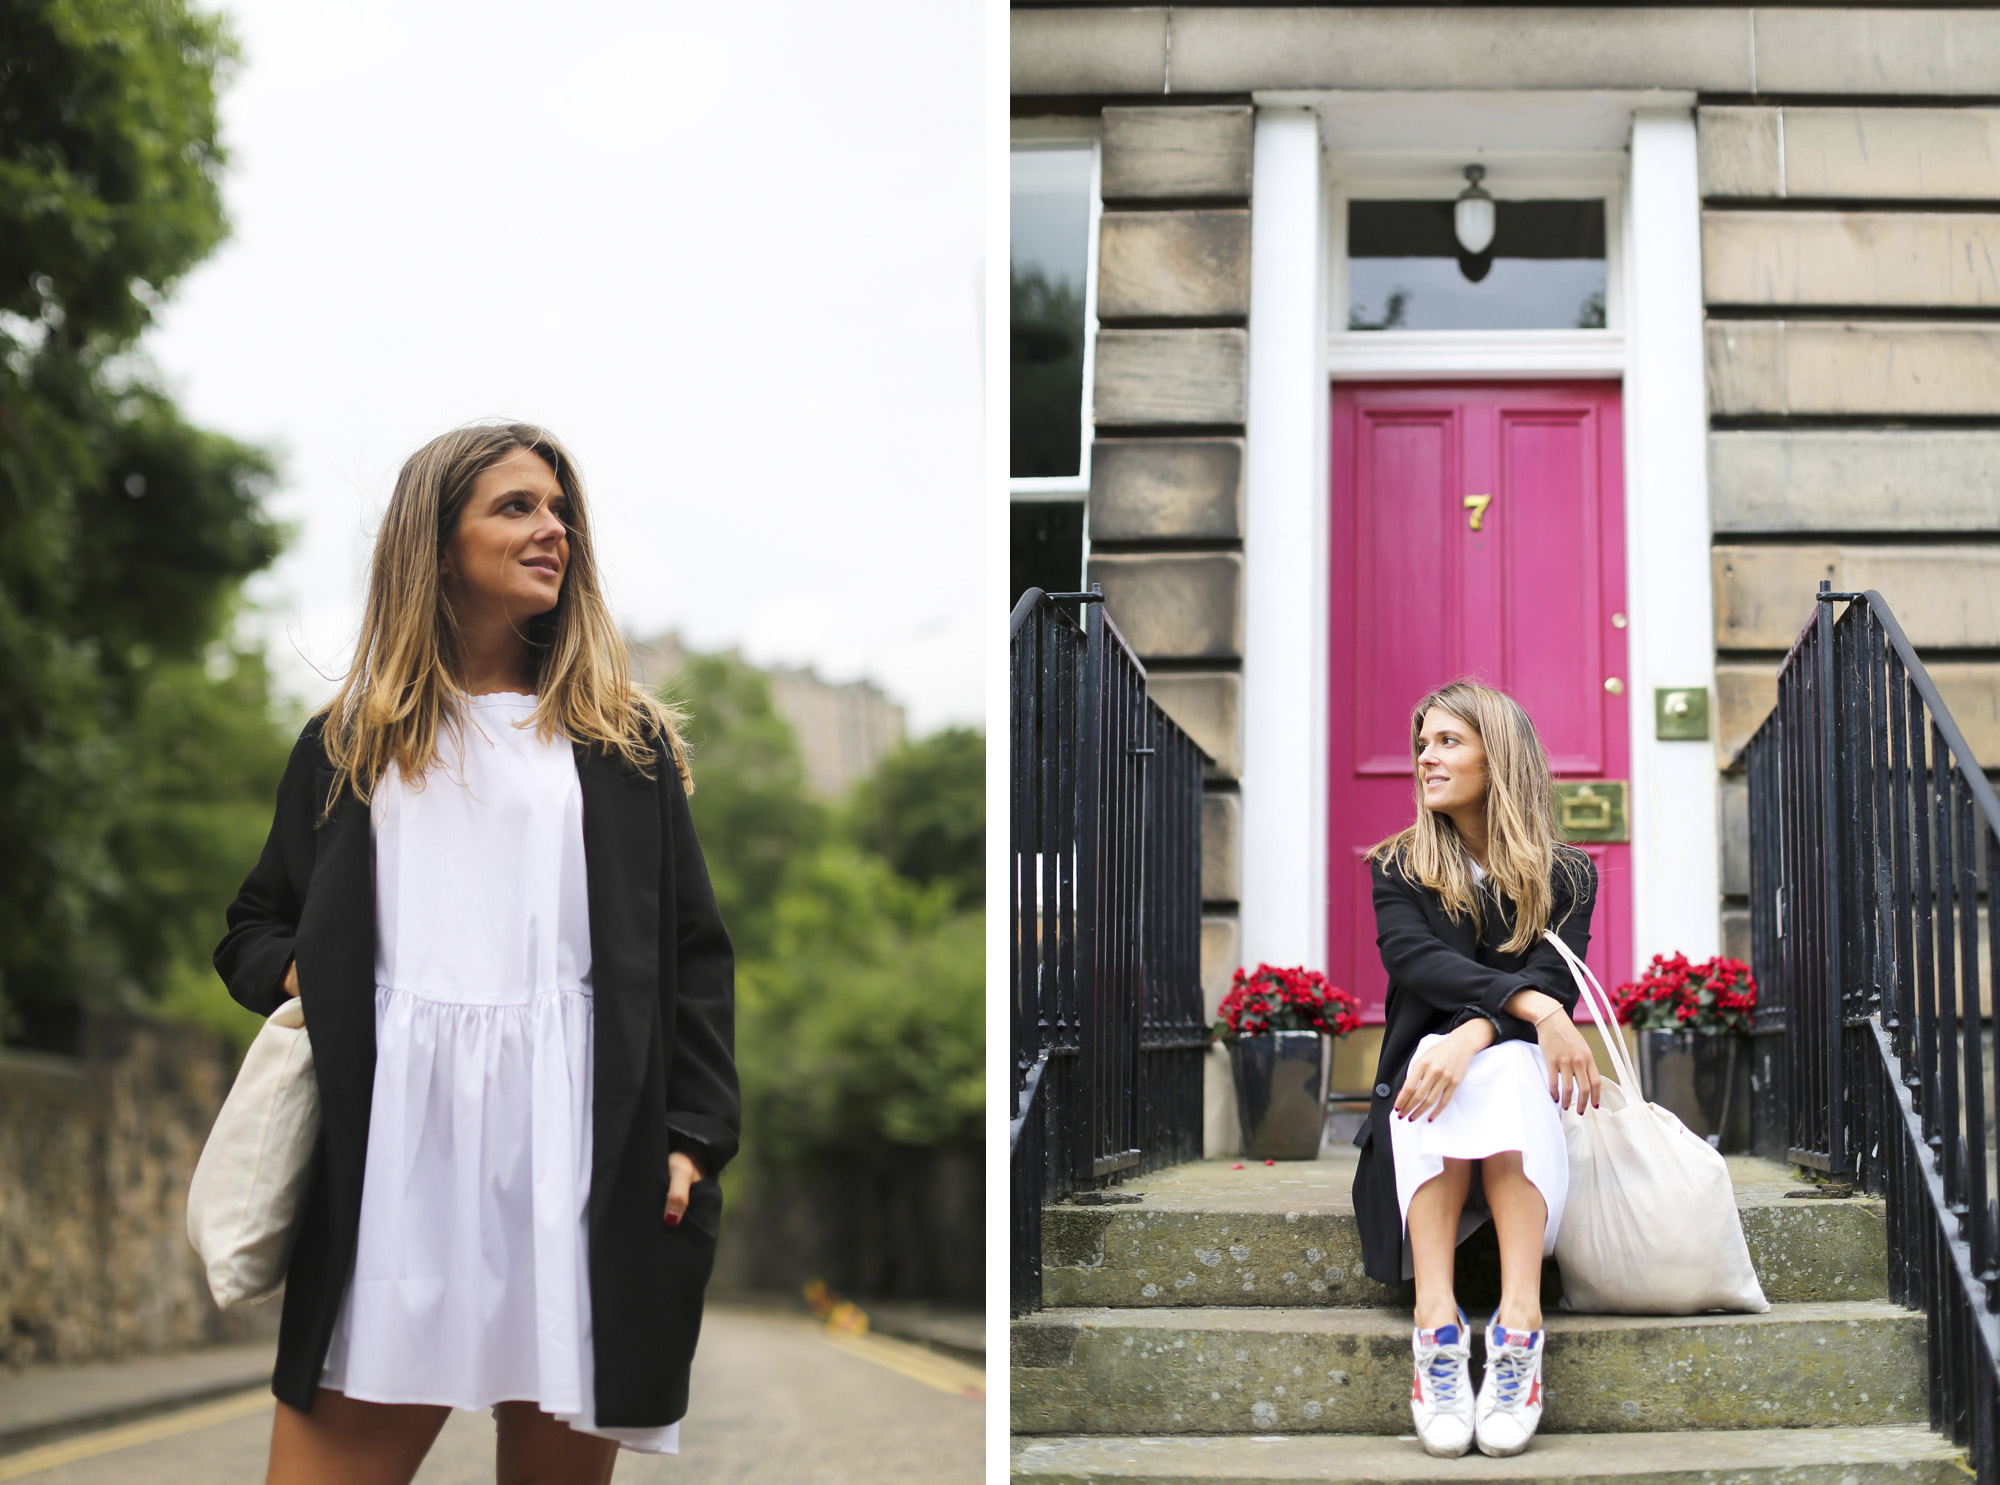 Clochet_streetstyle_zara_littlewhitedress_goldengoosedeluxesneakers_edinburgh-8